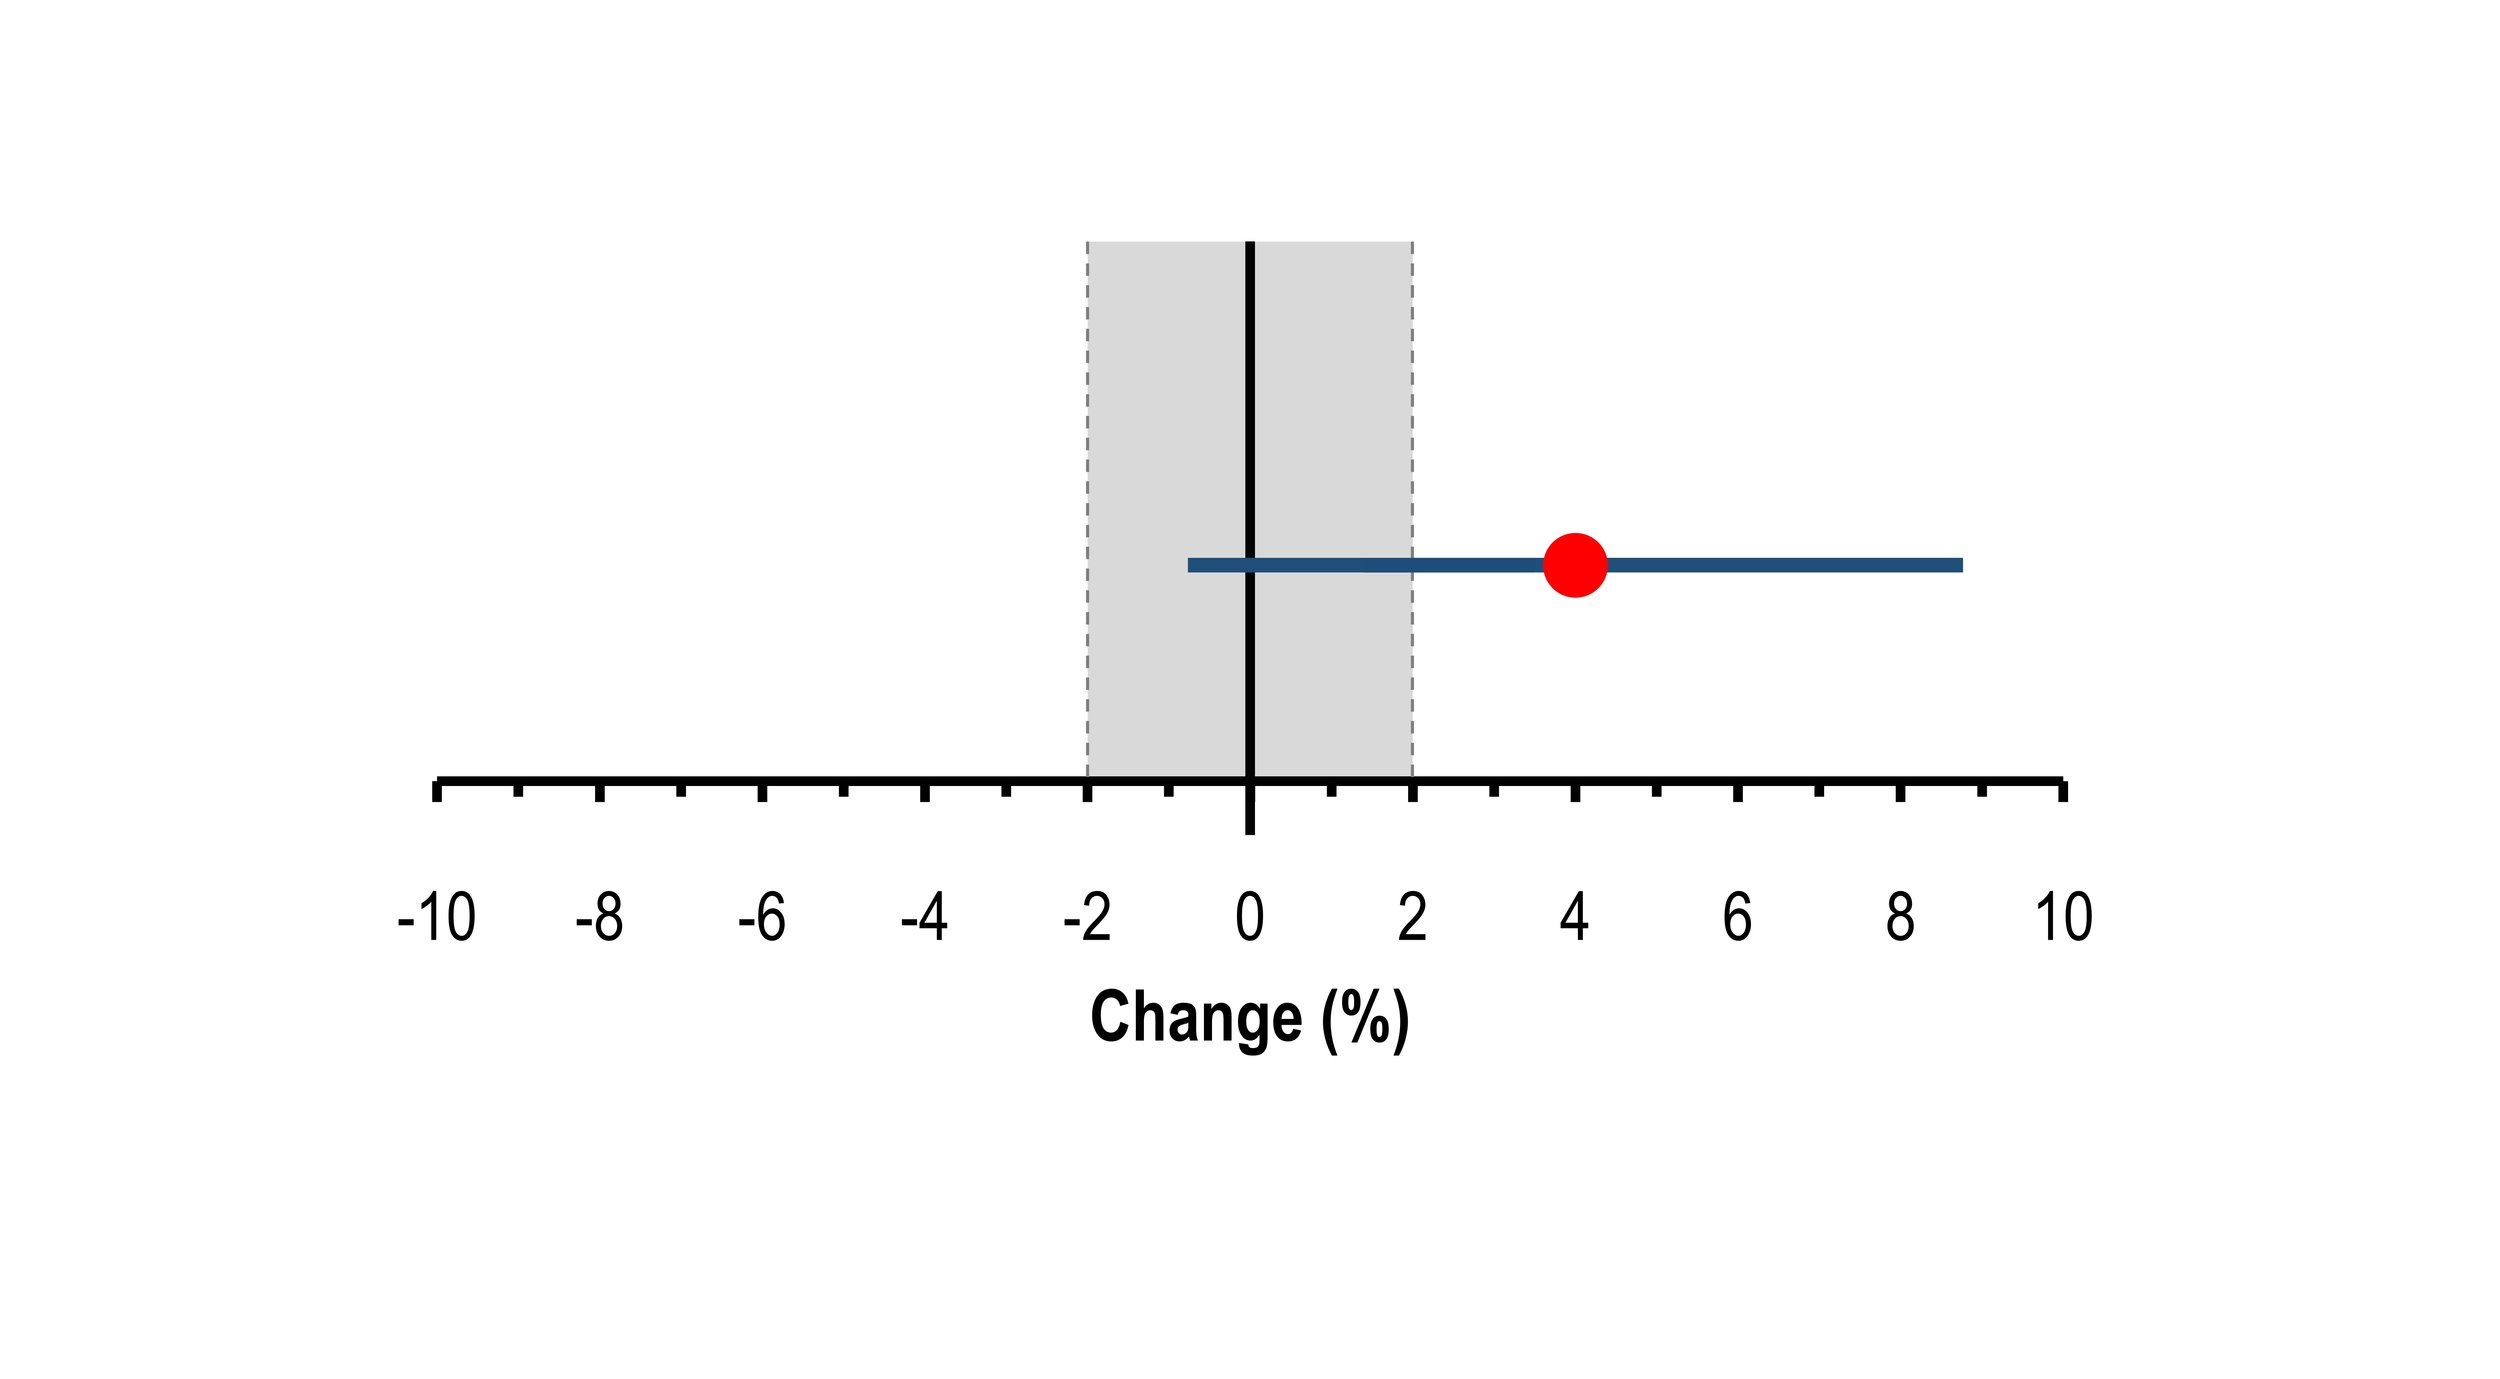 Figure 3: Observed change (red point) with and 90% confidence interval (dark grey adjoined bar) against threshold for practical importance (dotted grey line. Light grey shaded area = trivial).